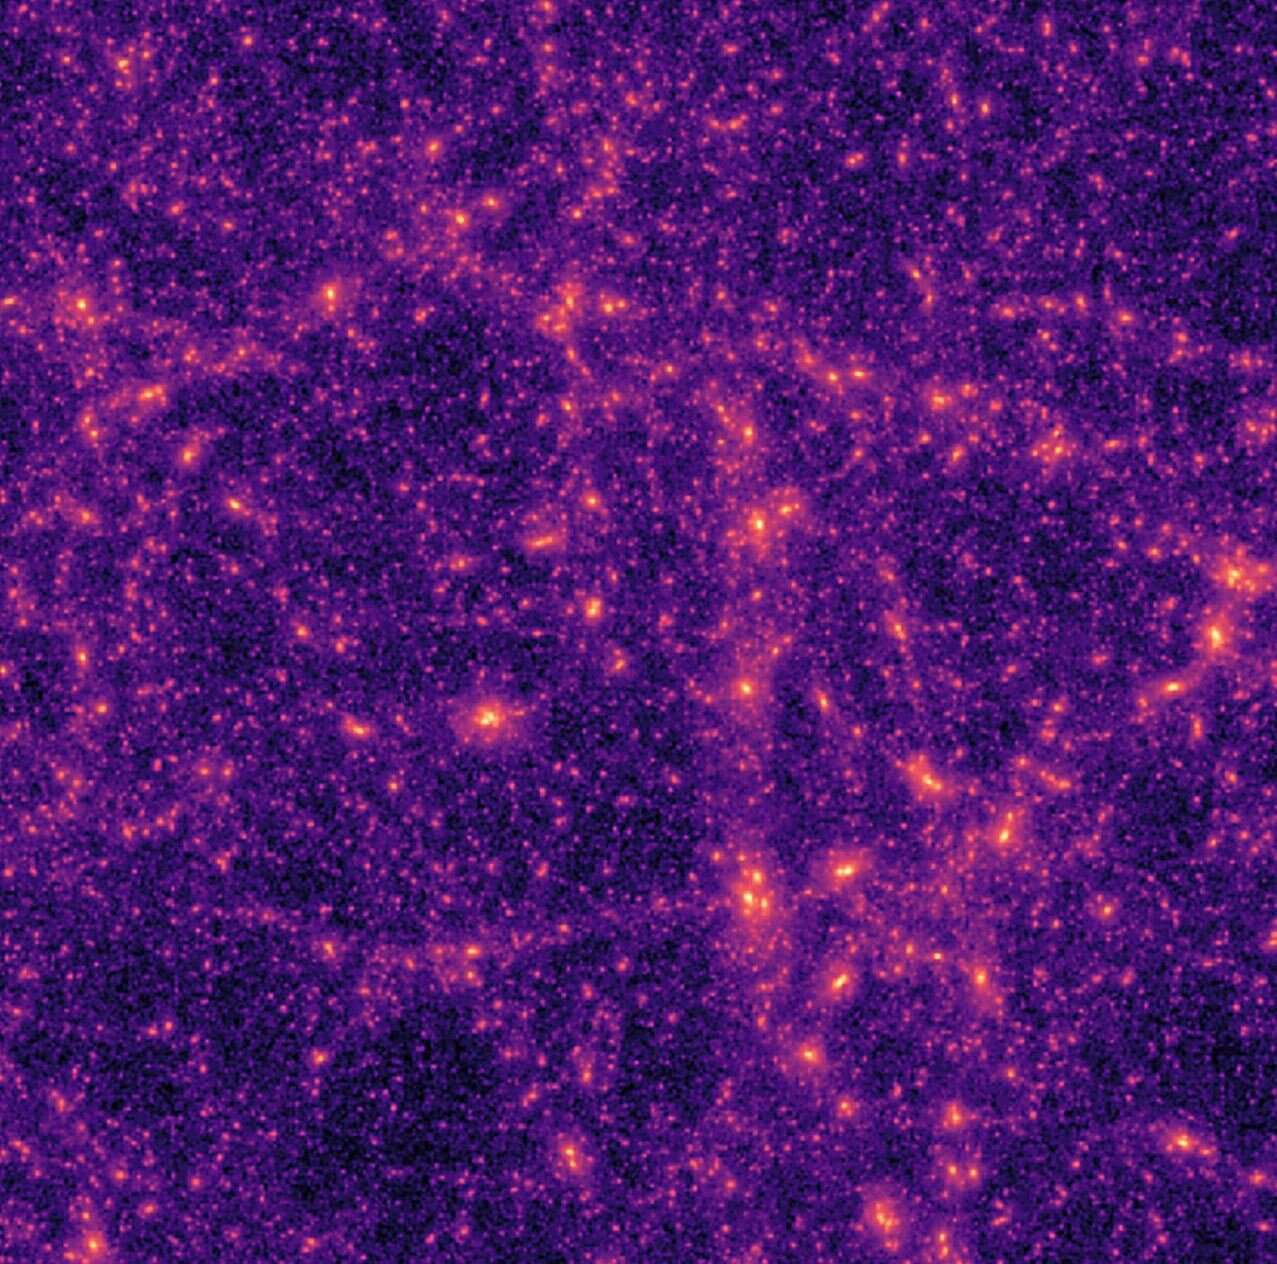 A typical computer-generated dark matter map used by the researchers to train their neural network. - Image Credits:  ETH Zurich